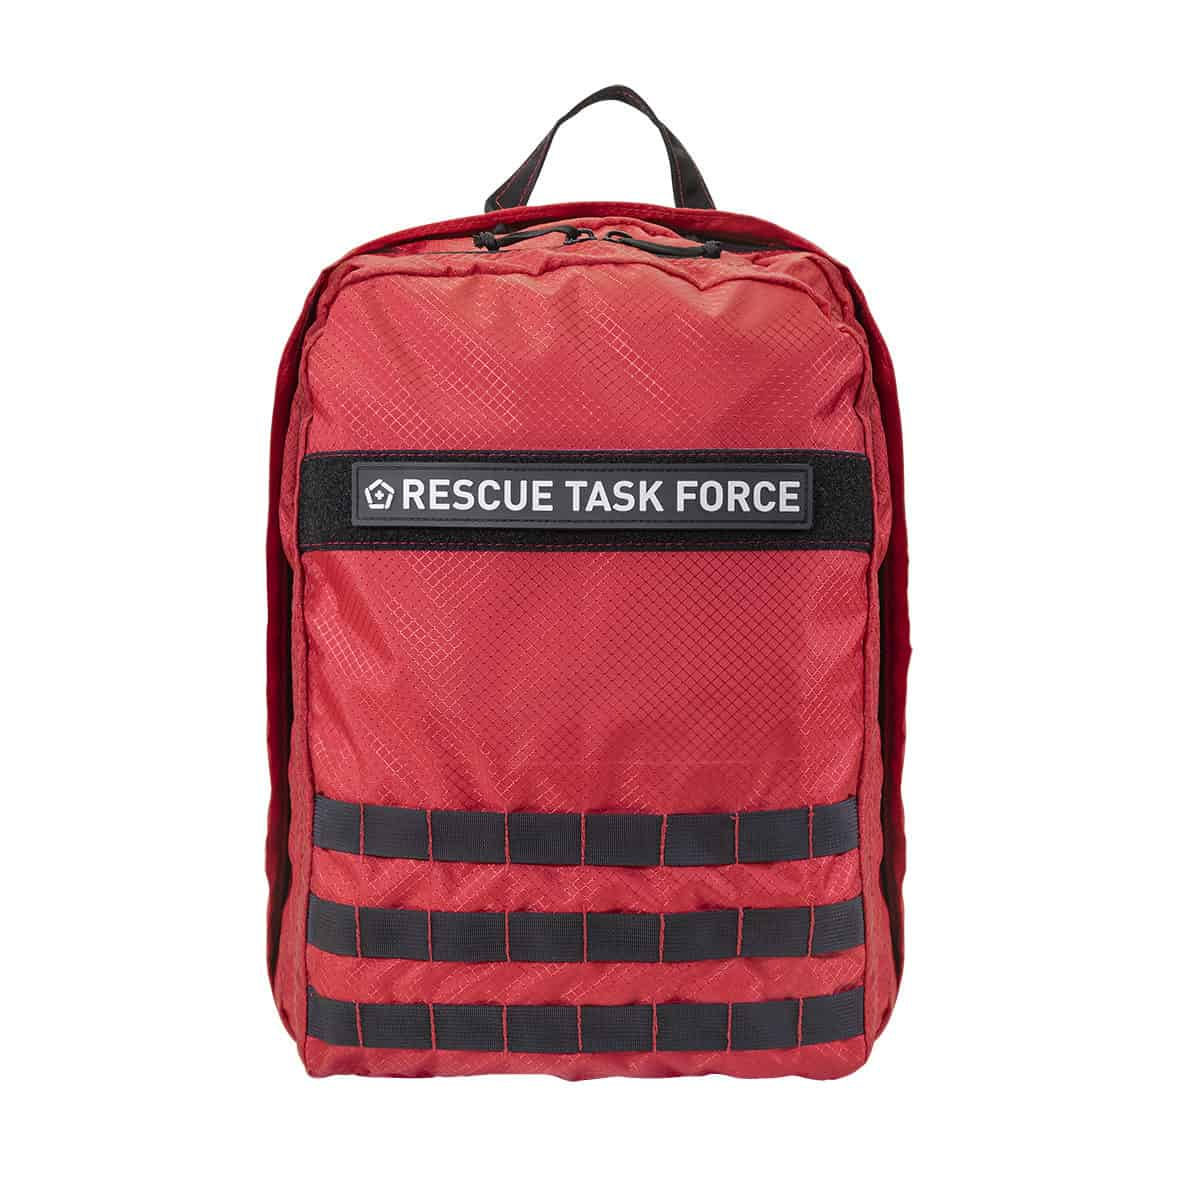 mojo rescue pack with patch closed front red